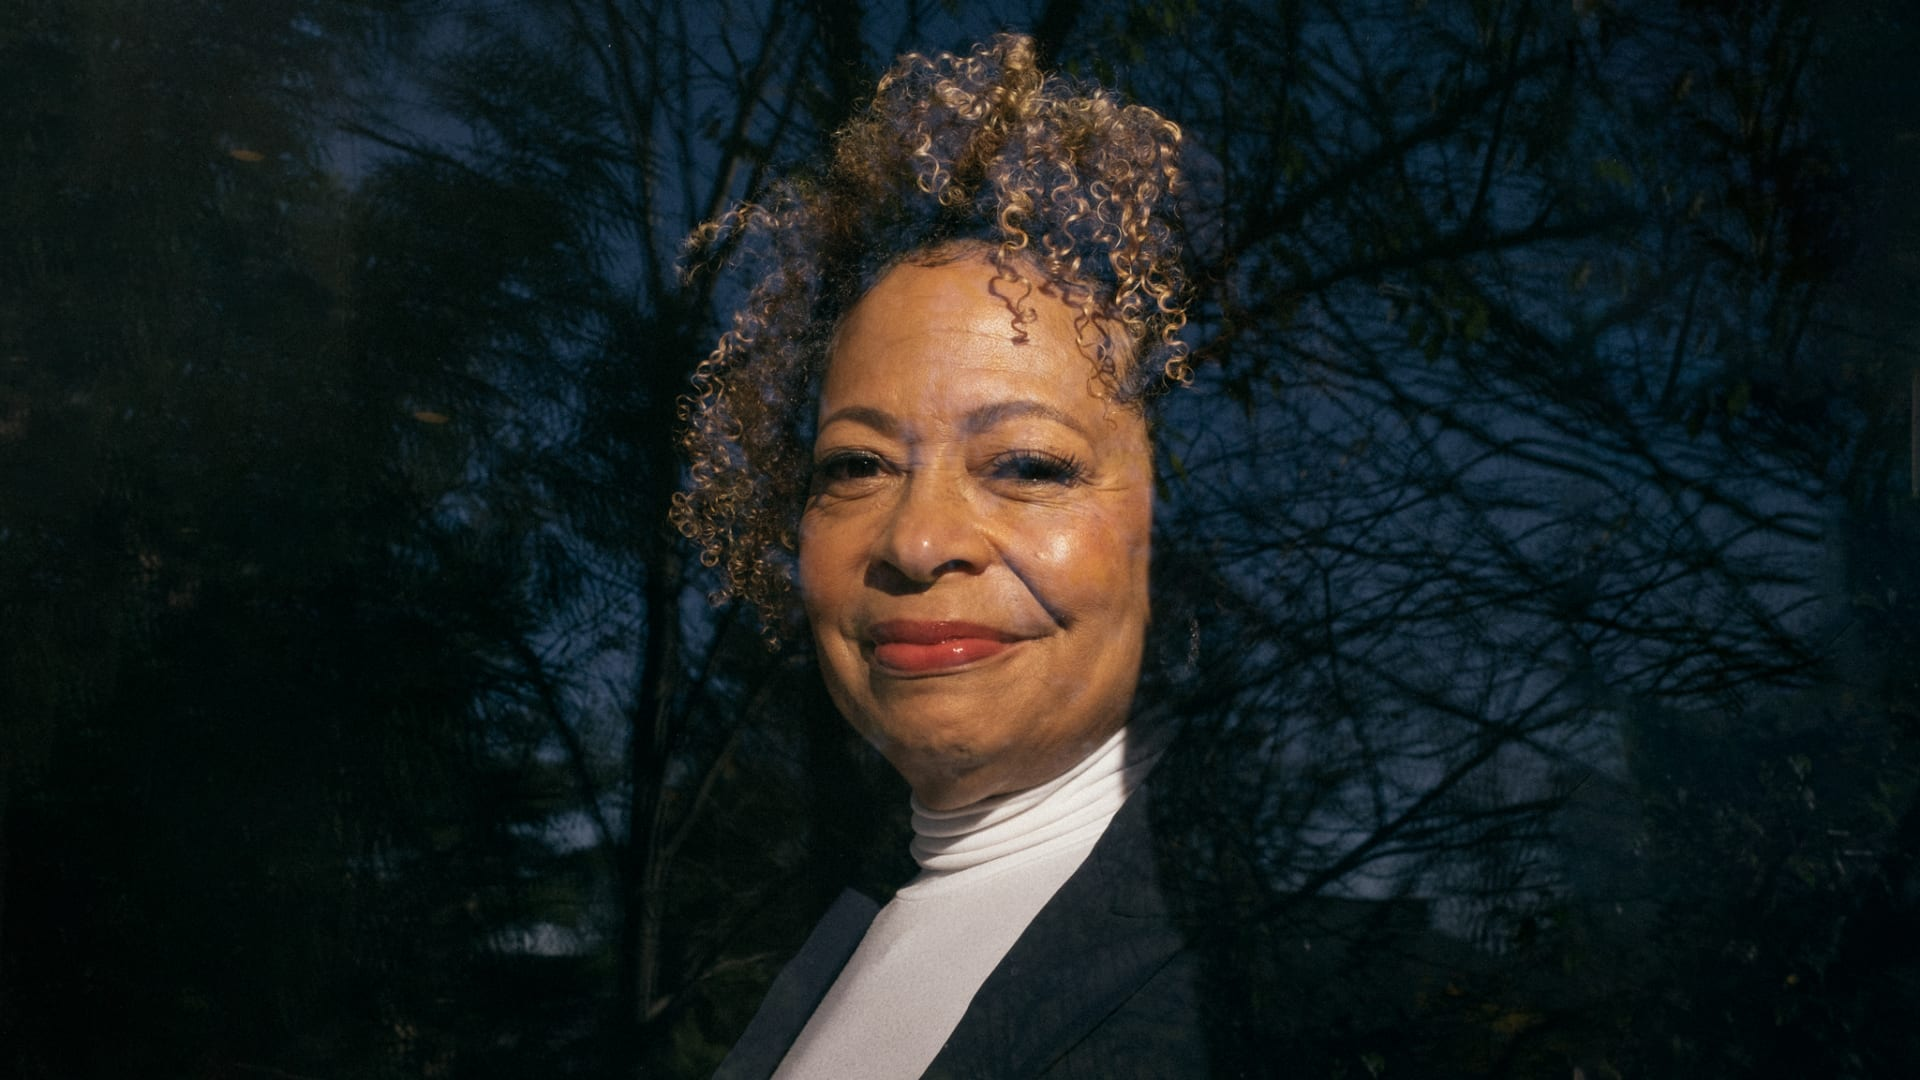 Deryl McKissack is the fifth generation in her family to carry on the building business tradition. The roots of her firm date back to the 18th century.